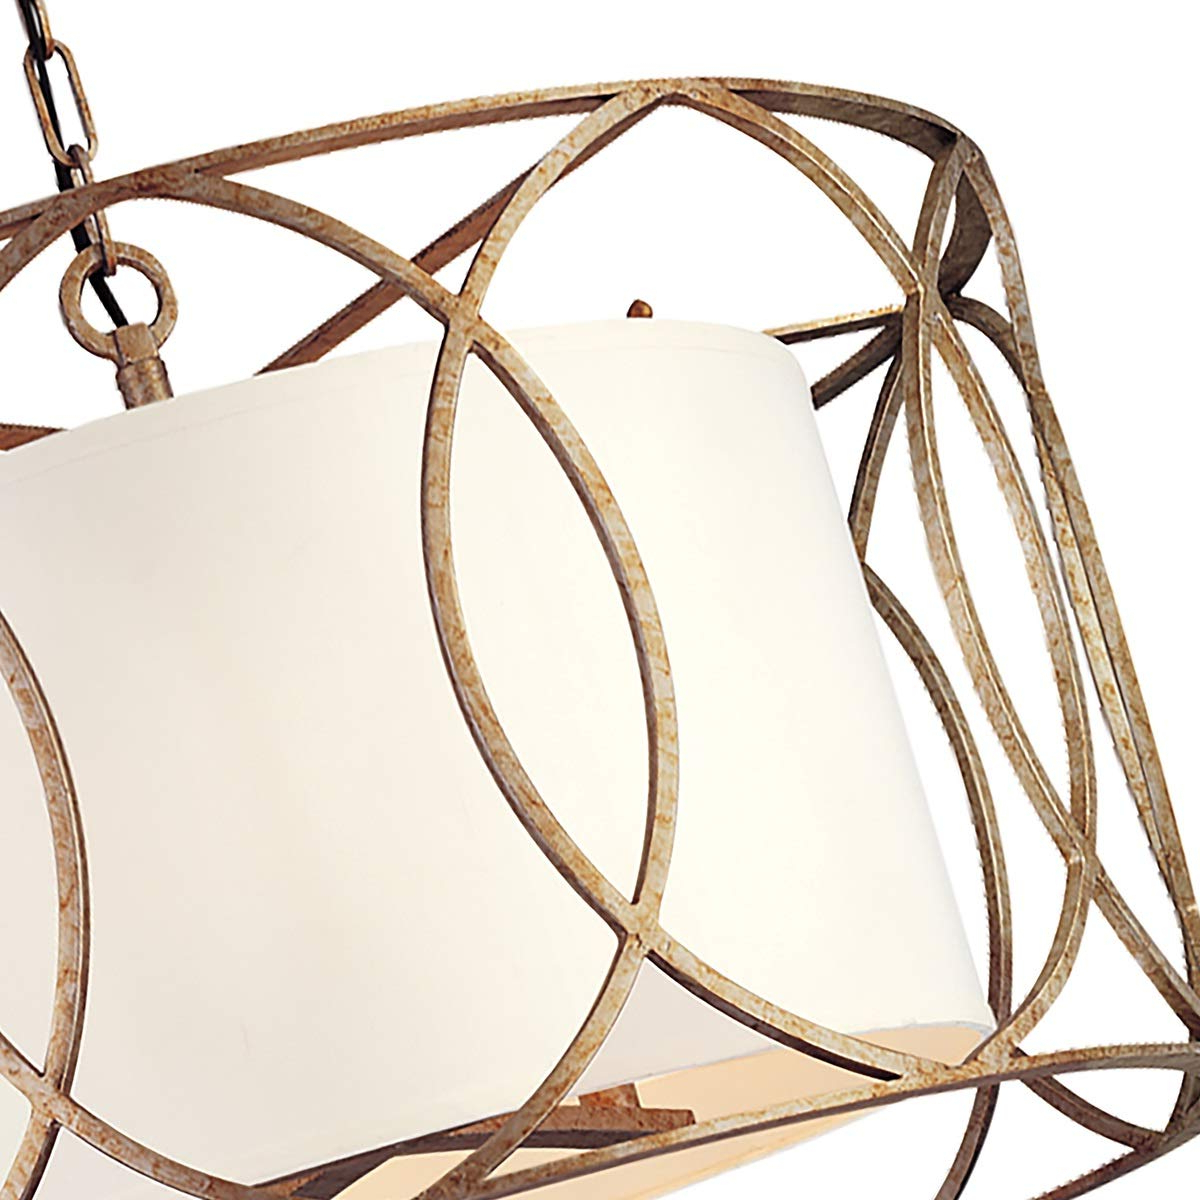 Newest Troy Lighting Sausalito 5-Light Chandelier - Silver Gold Finish With  Hardback Linen Shade within Balducci 5-Light Pendants